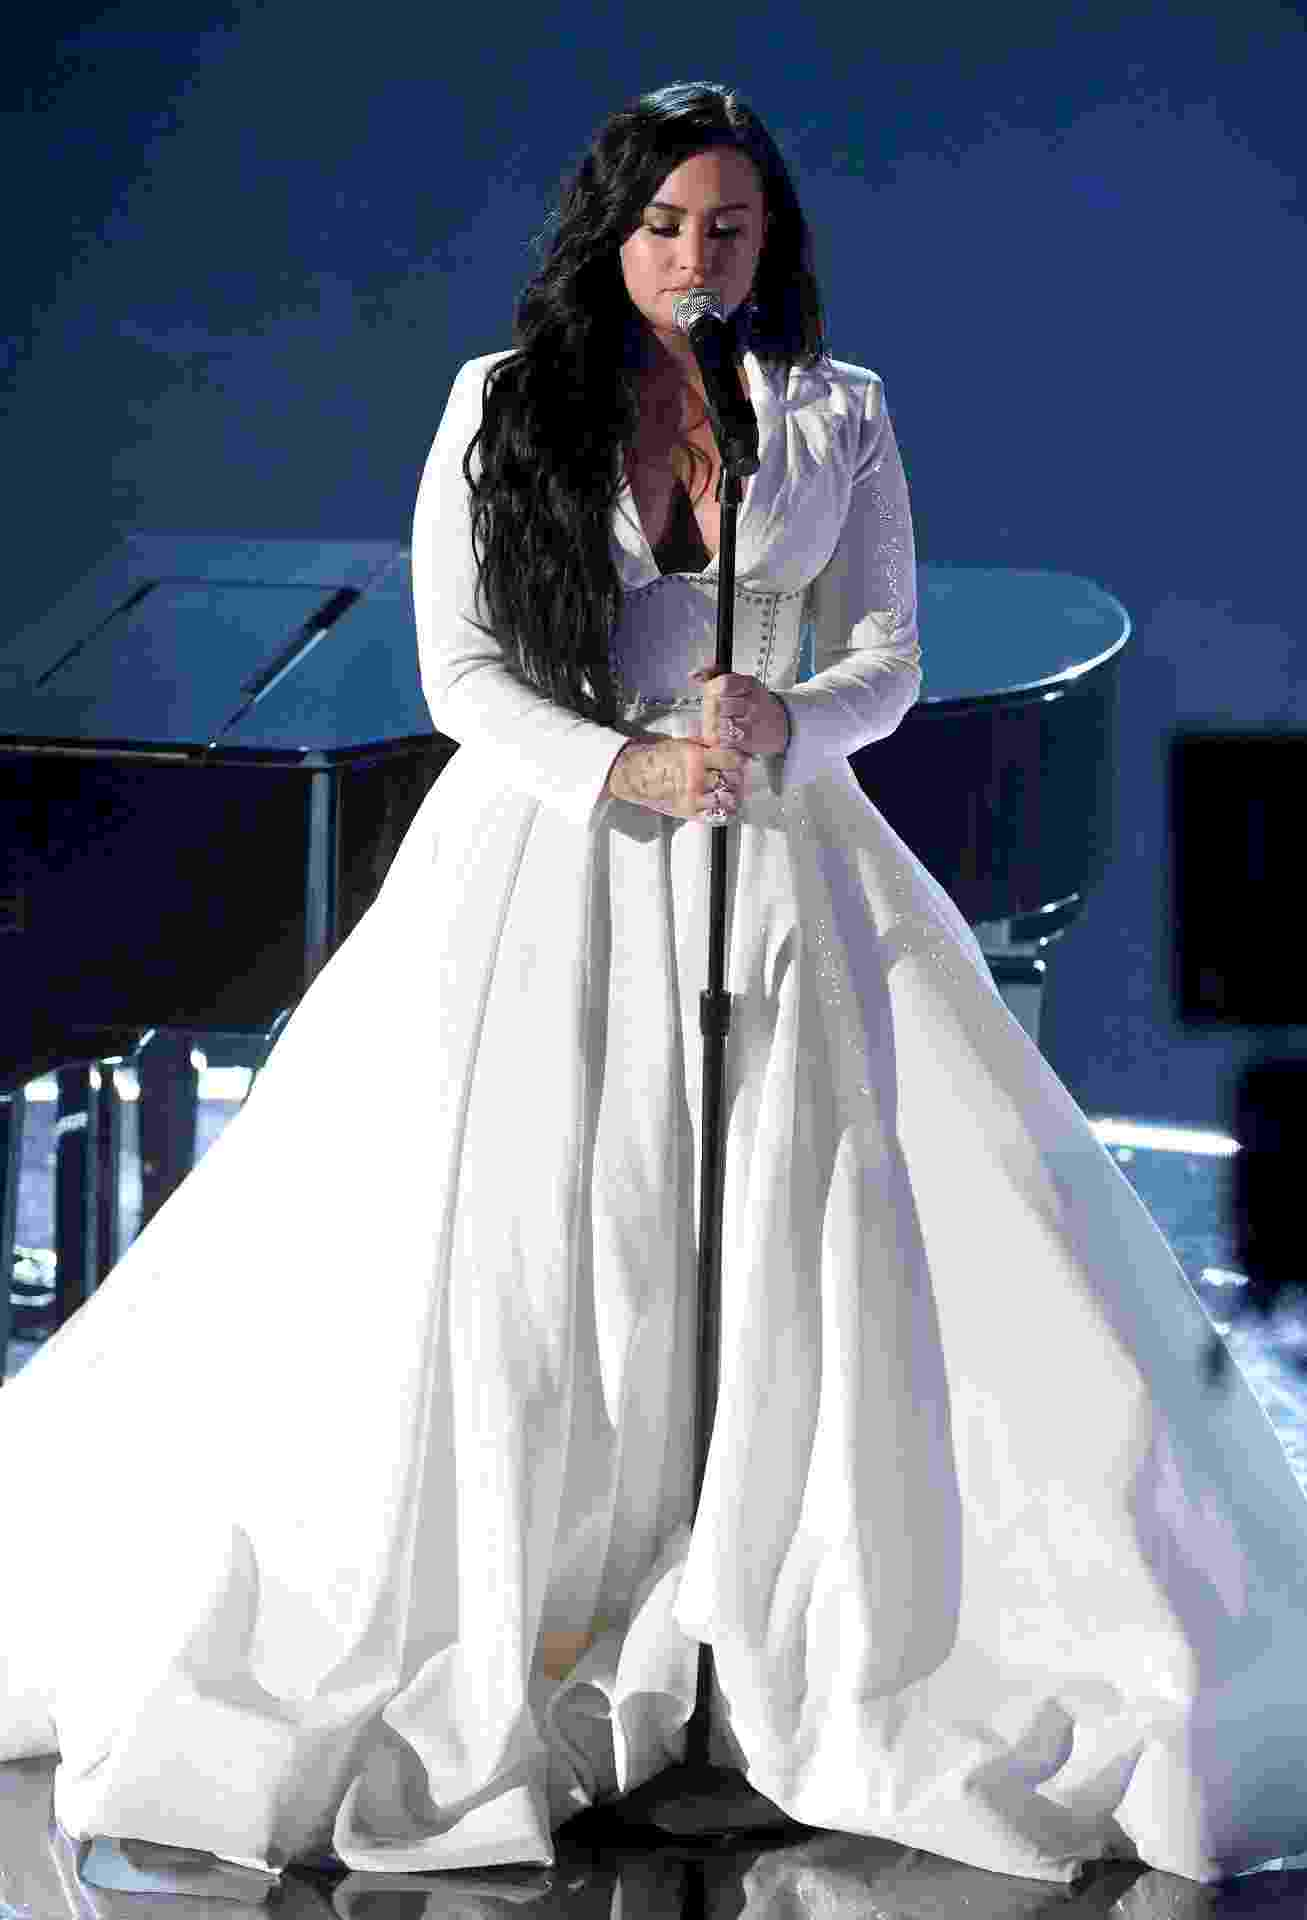 Demi Lovato se apresenta no Grammy 2020 - Kevin Winter/Getty Images for The Recording Academy